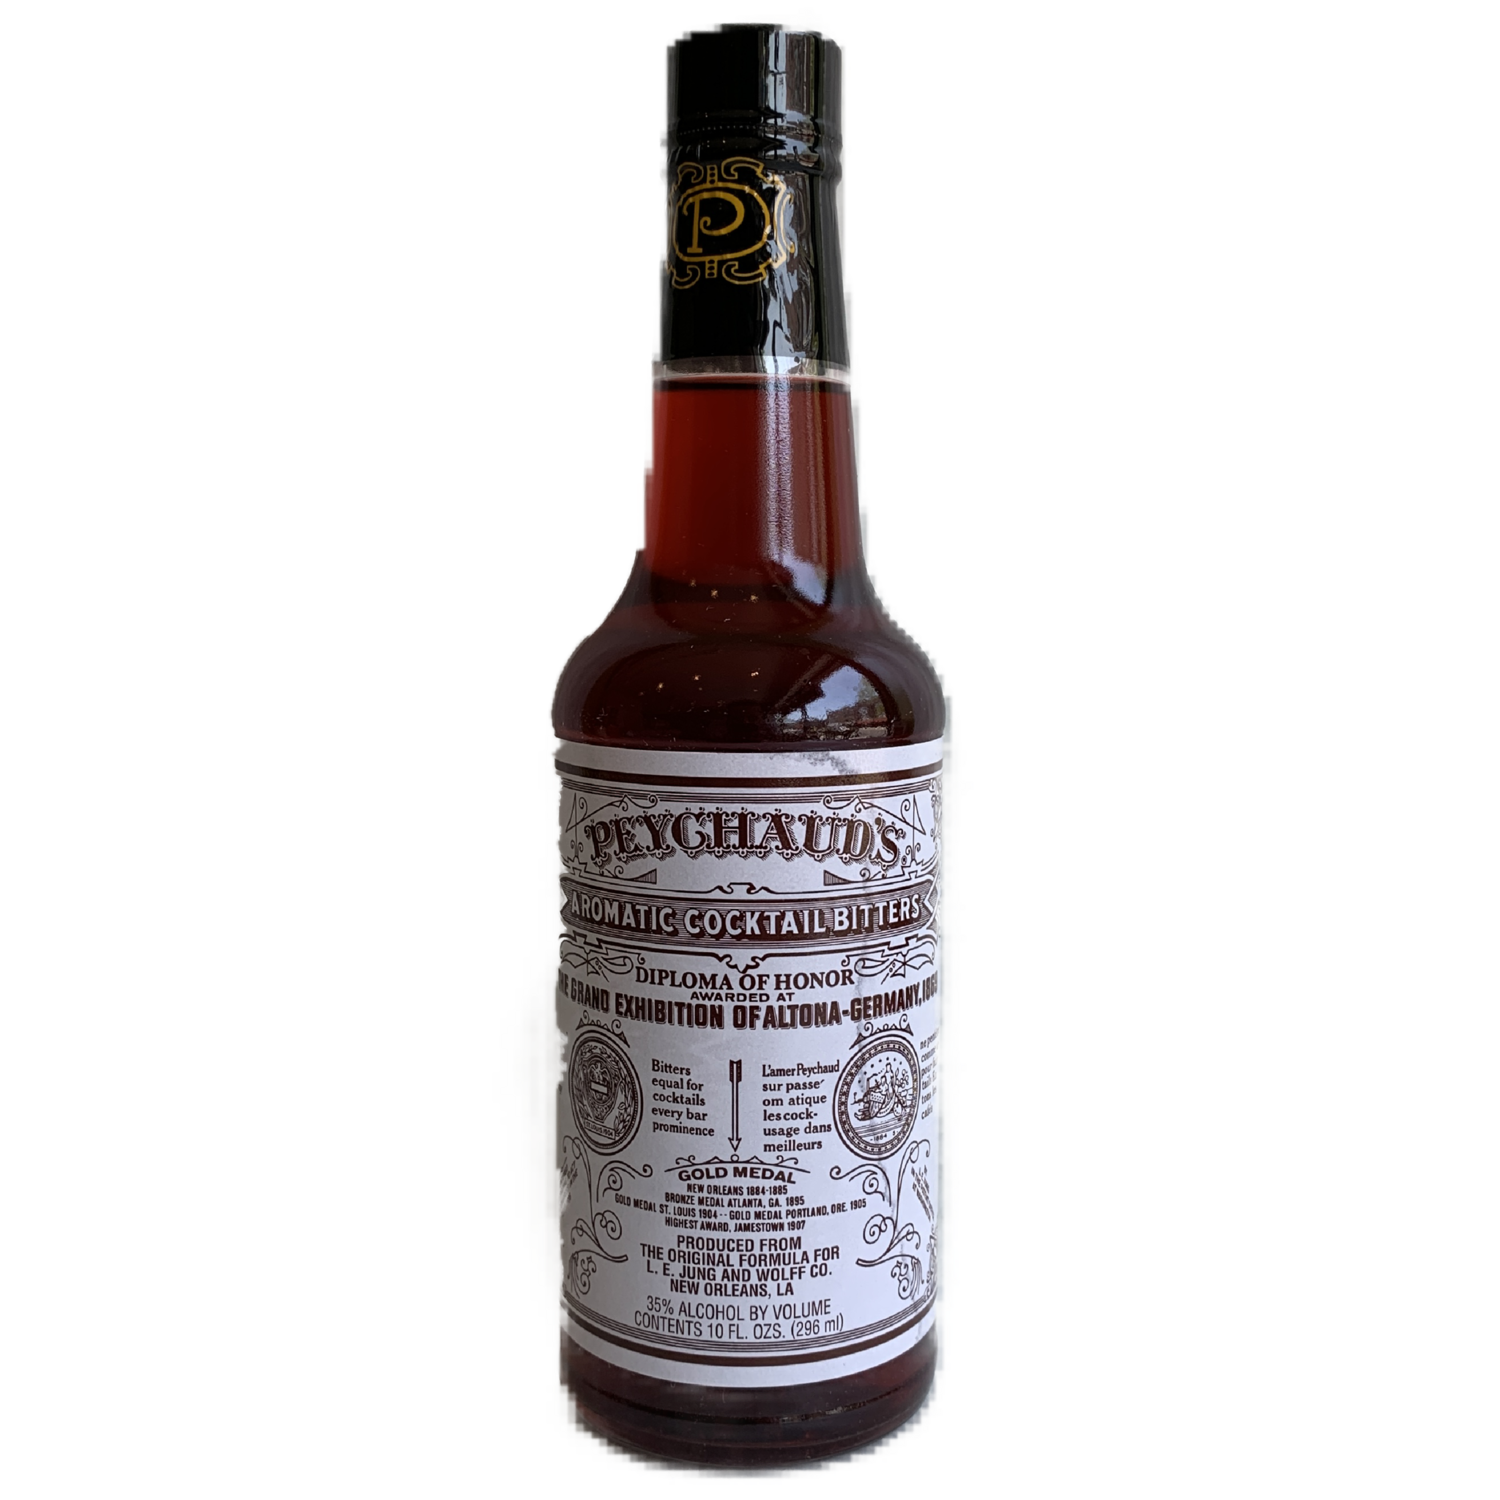 LARGE Peychaud's Bitters 10oz